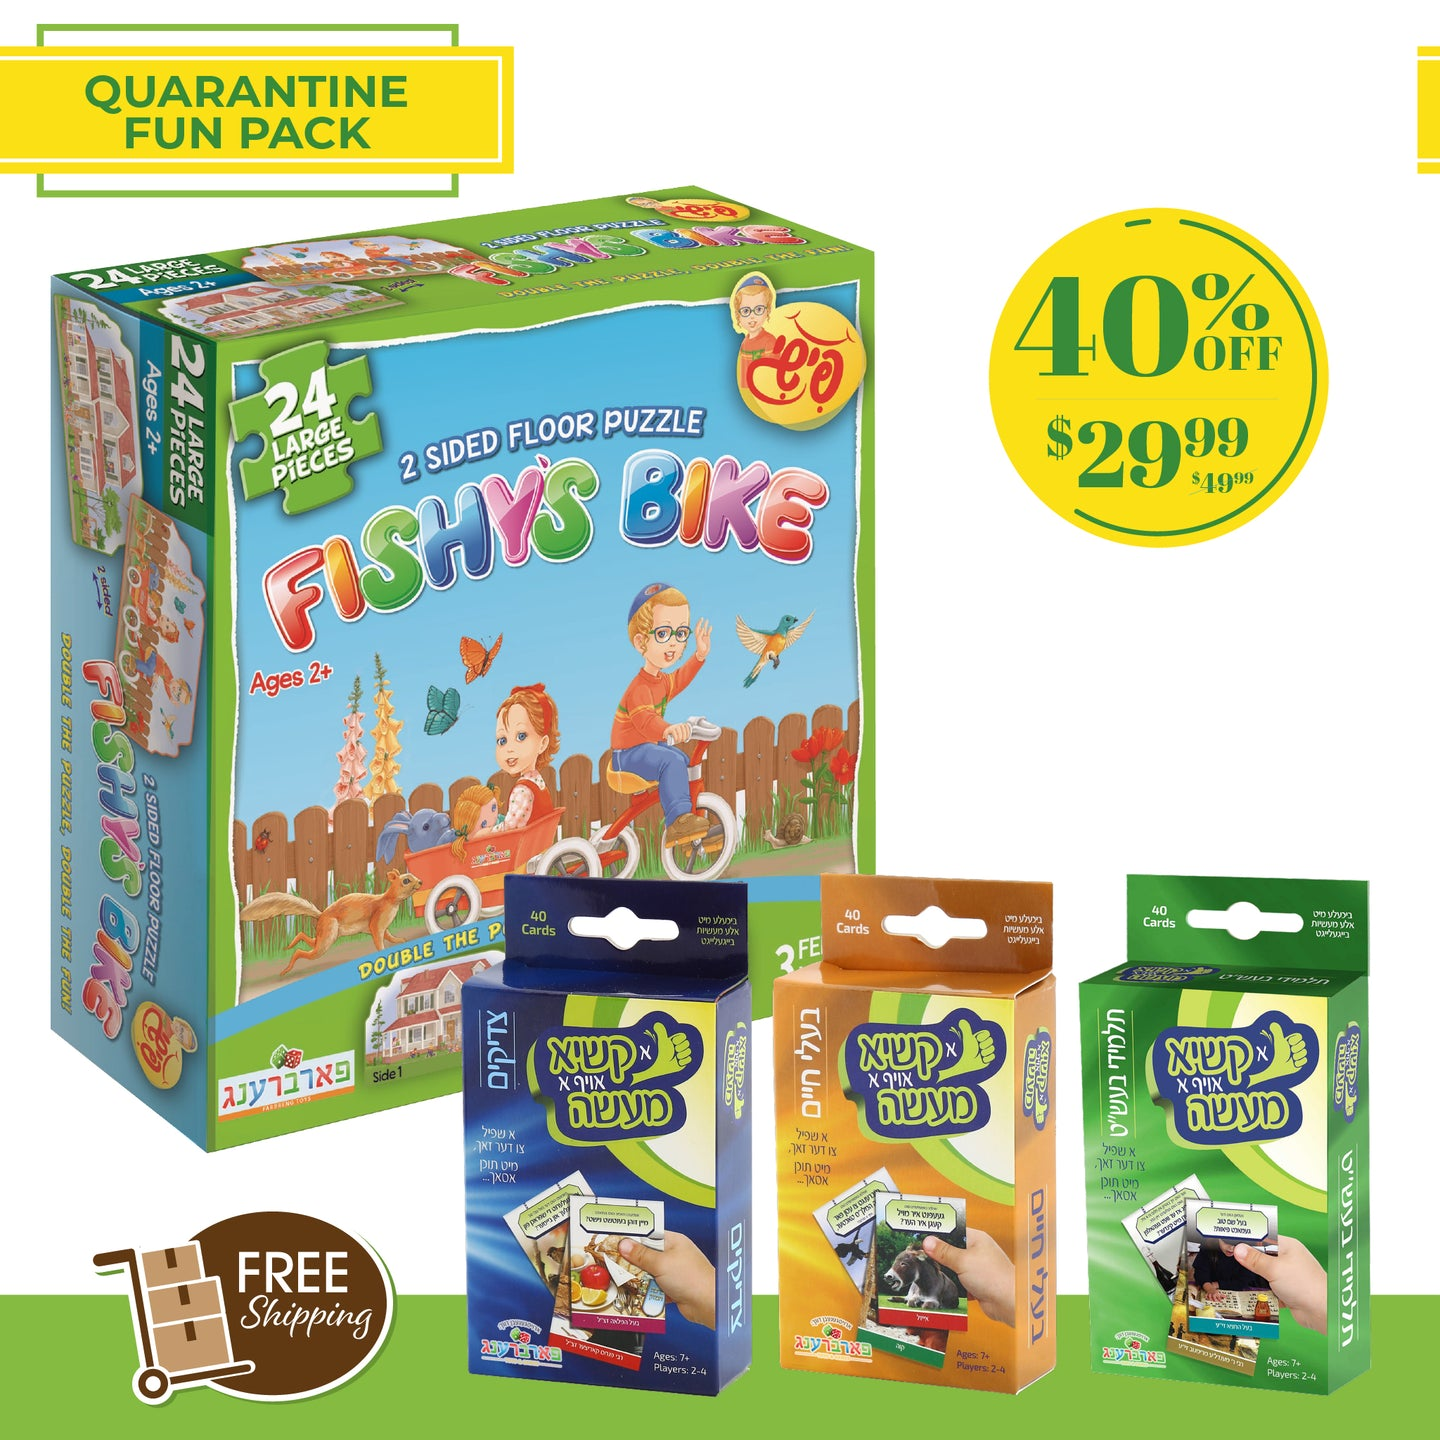 Quarantine Fun Pack #2 - Fishy's Bike 2 Sided Floor Puzzle (24 Piece) + 3 Card Games